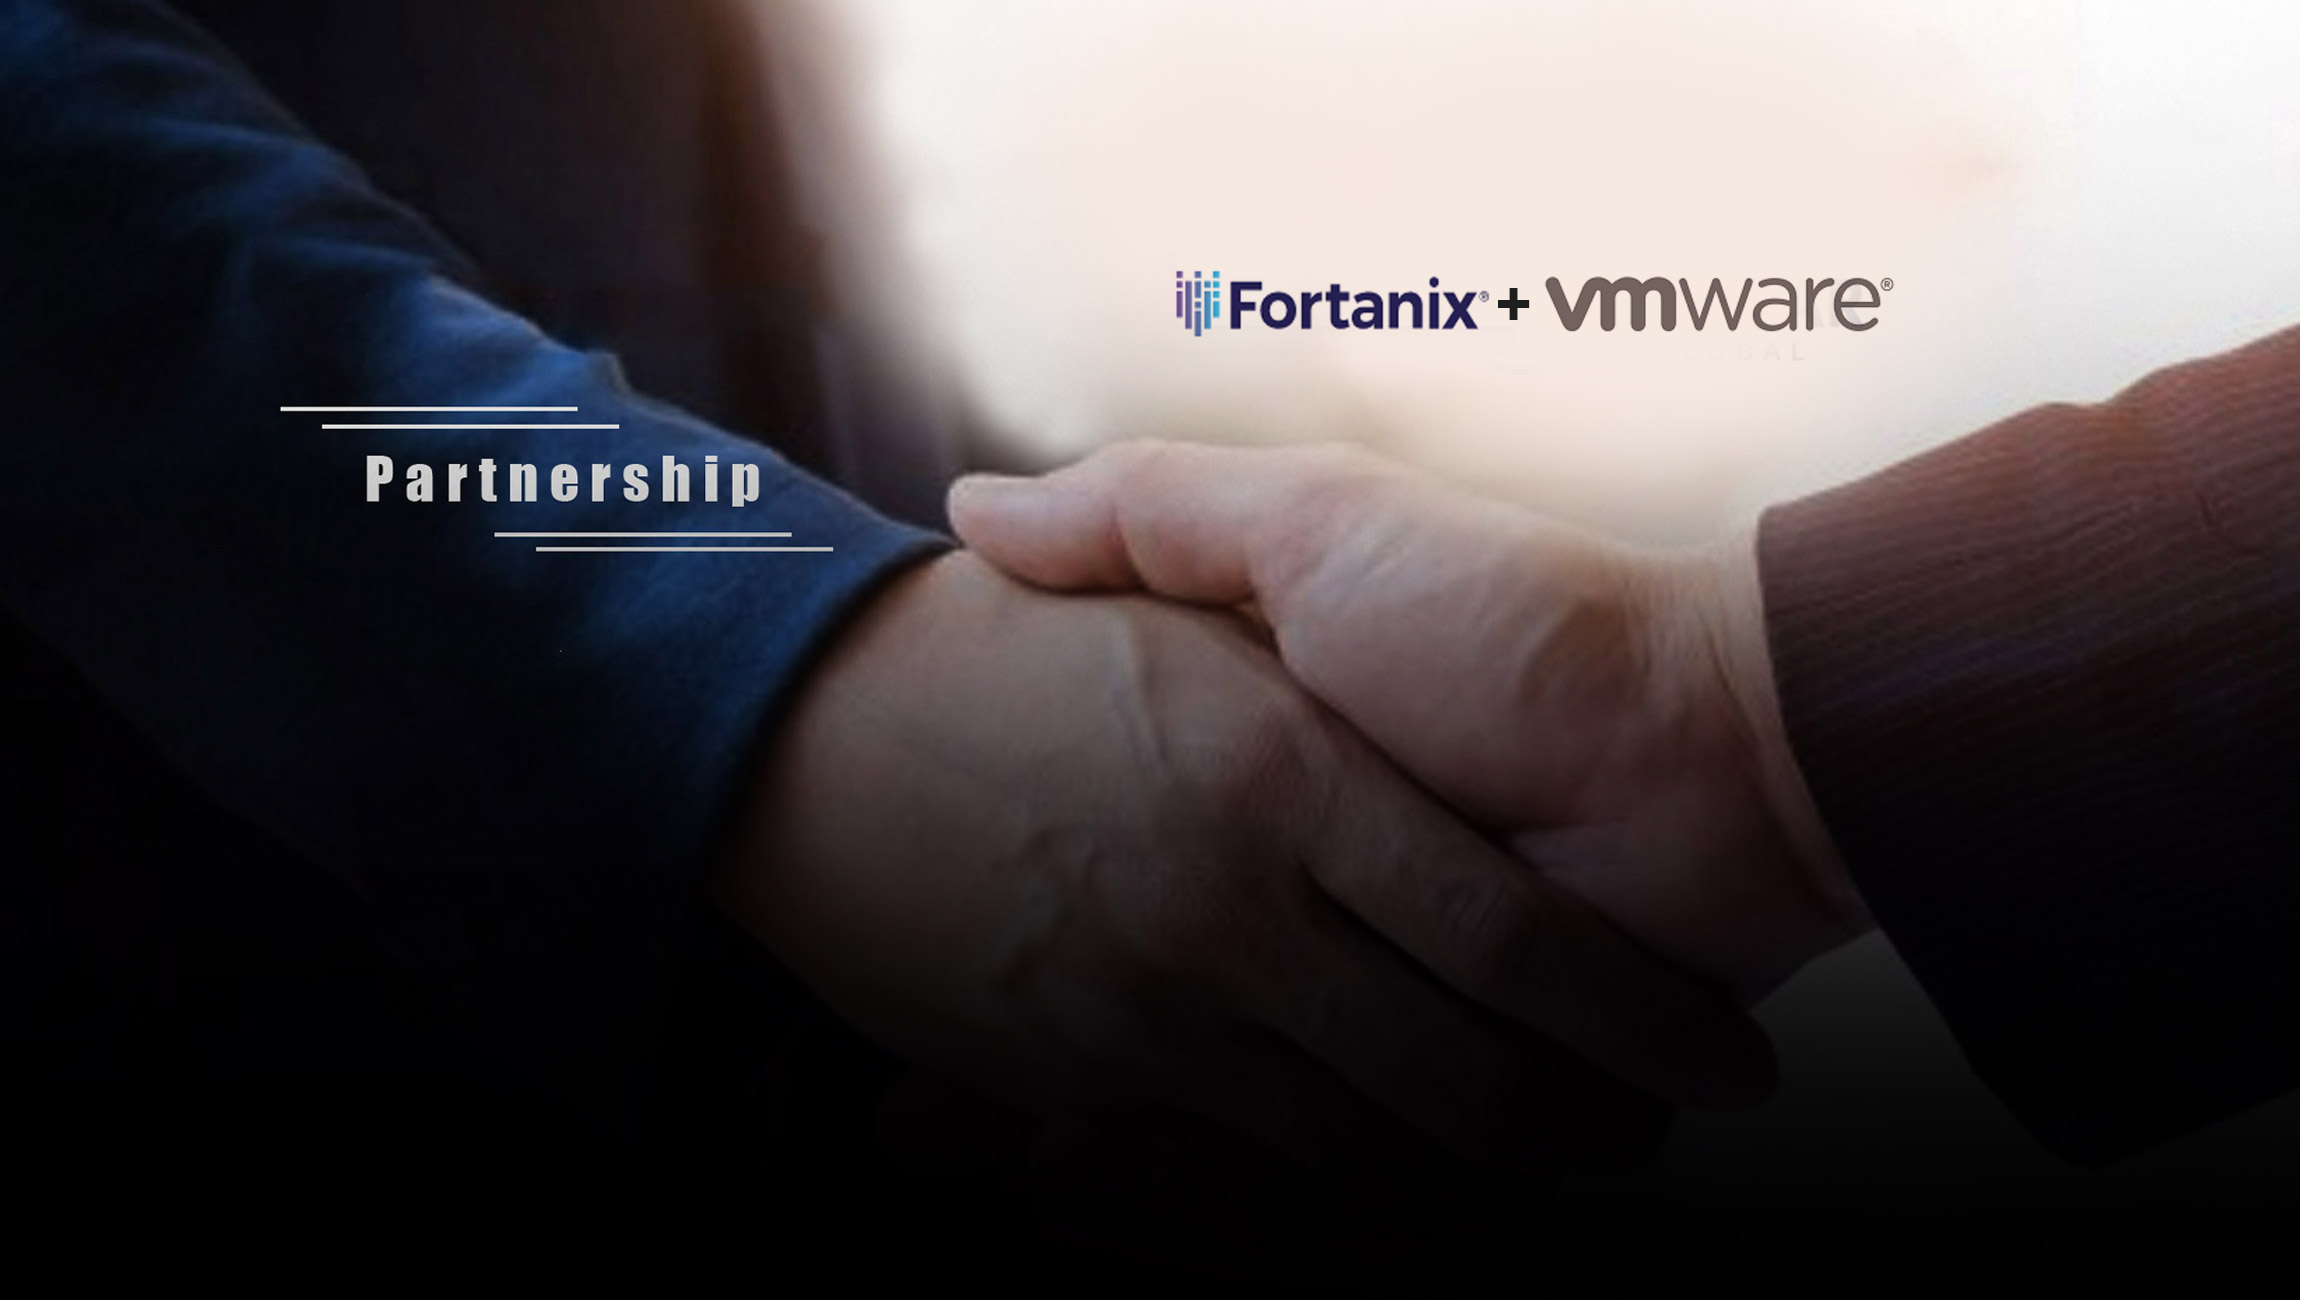 Fortanix Partners with VMware to Enable Cloud Service Providers to Deliver Data Security as a Service